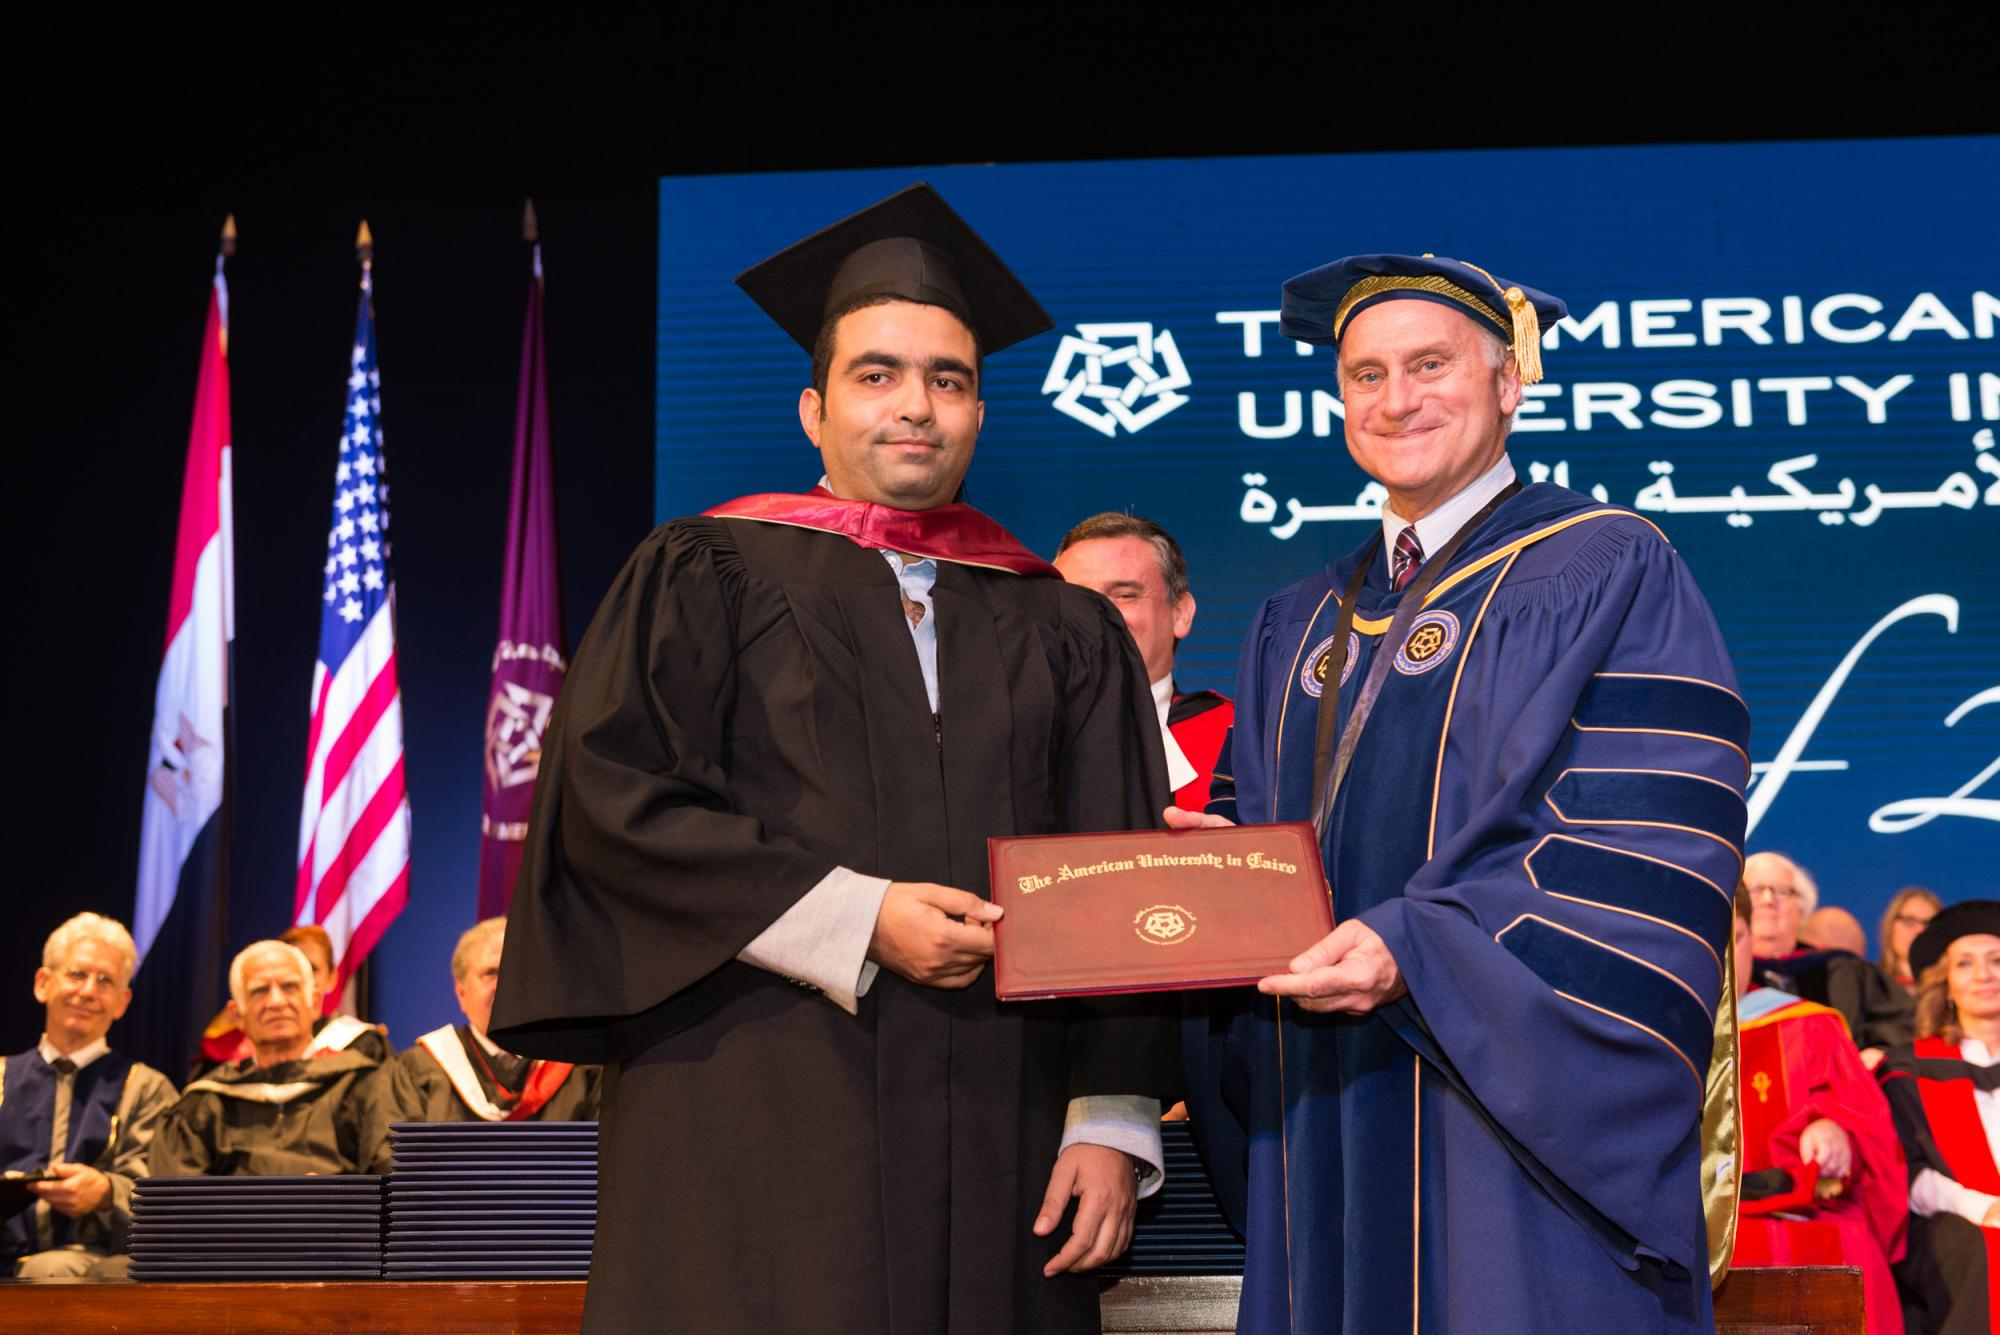 Mohammed Swillam, associate professor in the Department of Physics, received the Faculty Merit Award.